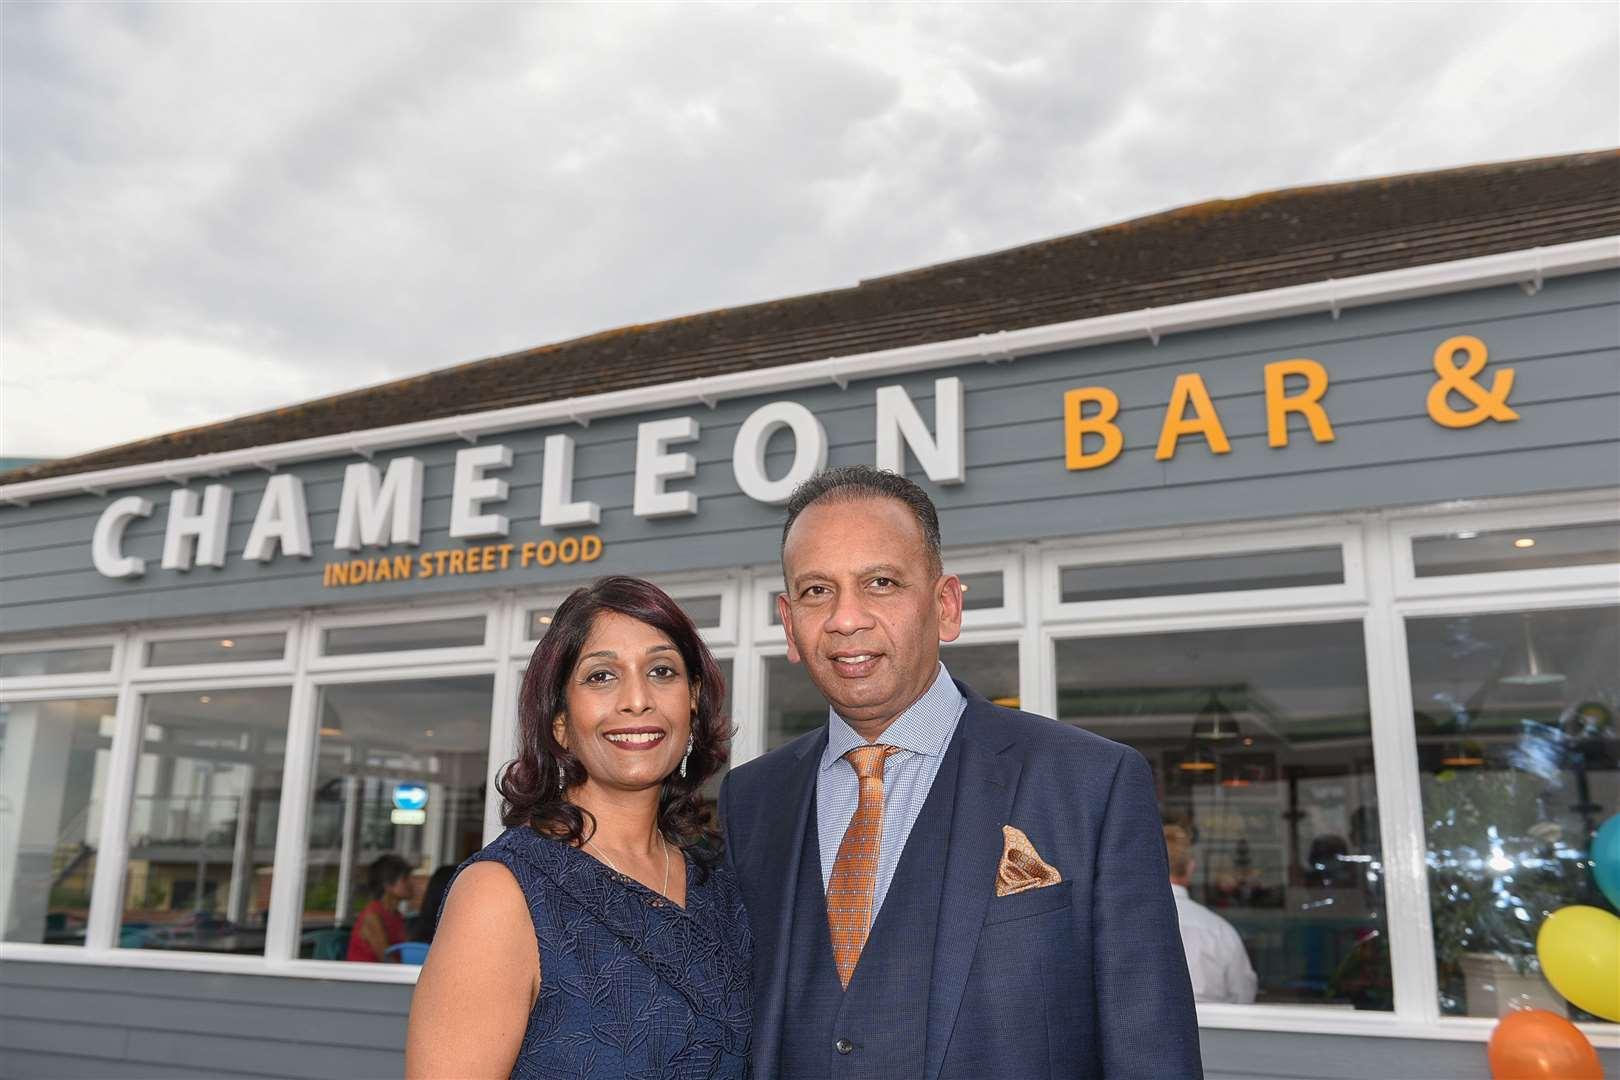 Mr Rajamenon has opened the Chameleon Bar & Grill in Hythe, pictured with wife Anusha